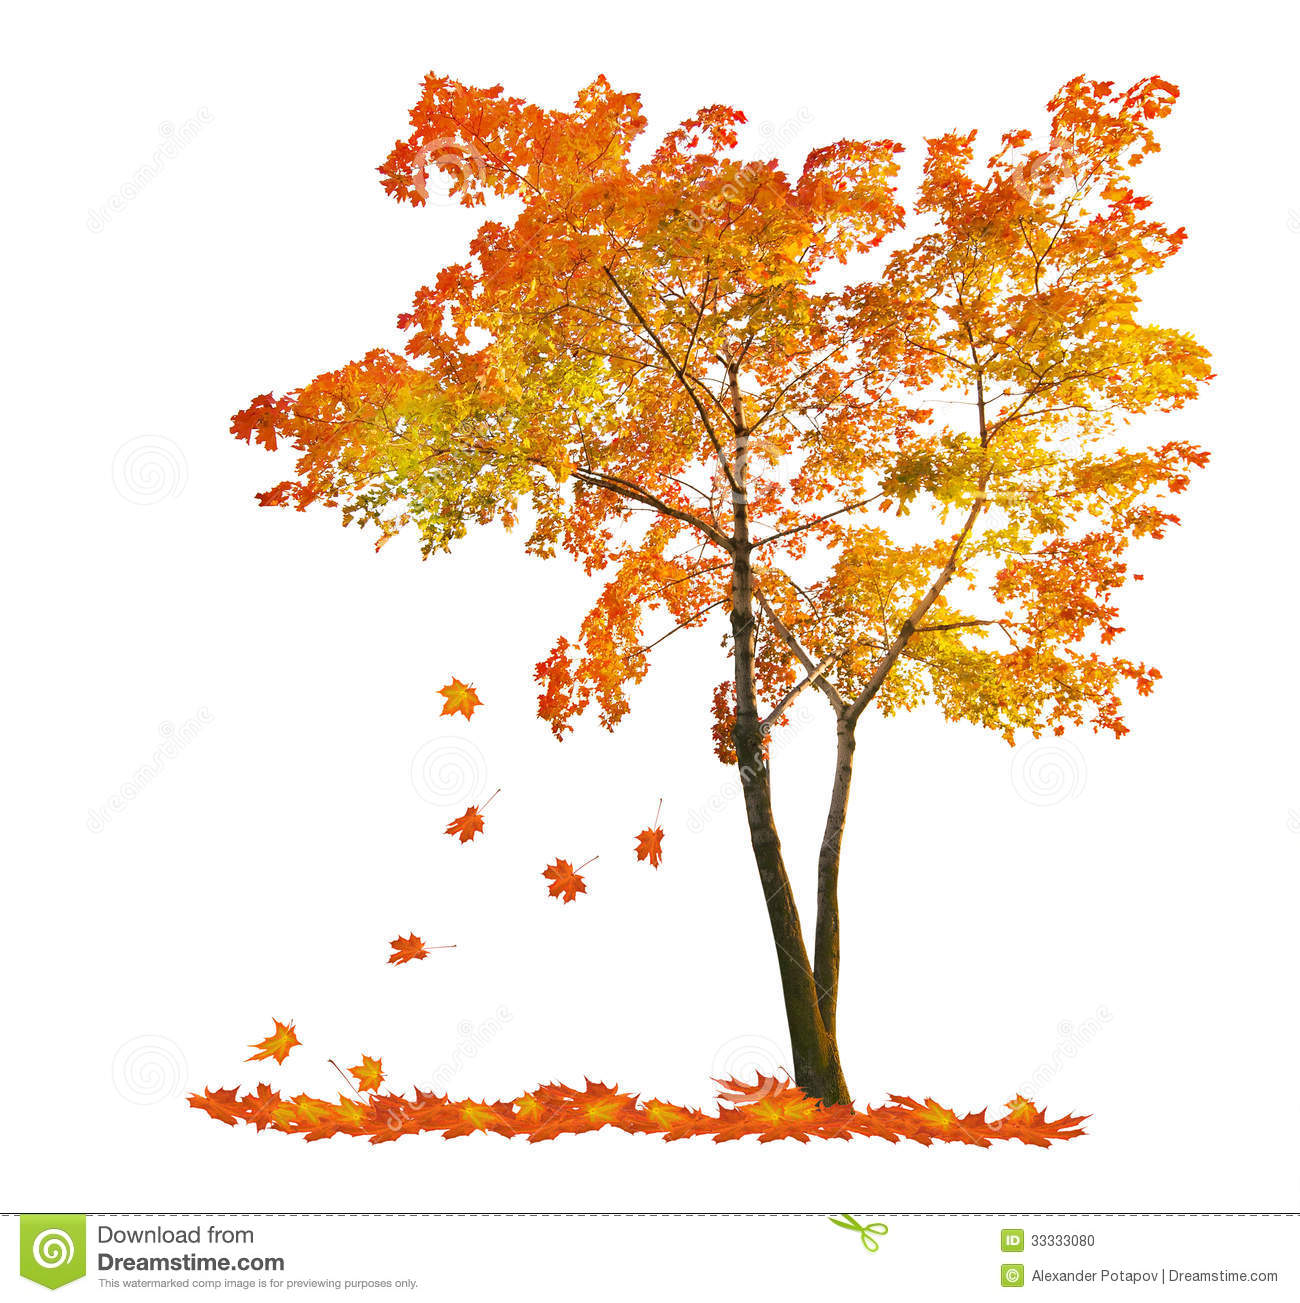 Red Autumn Maple Tree With Falling Leaves Stock Photo.